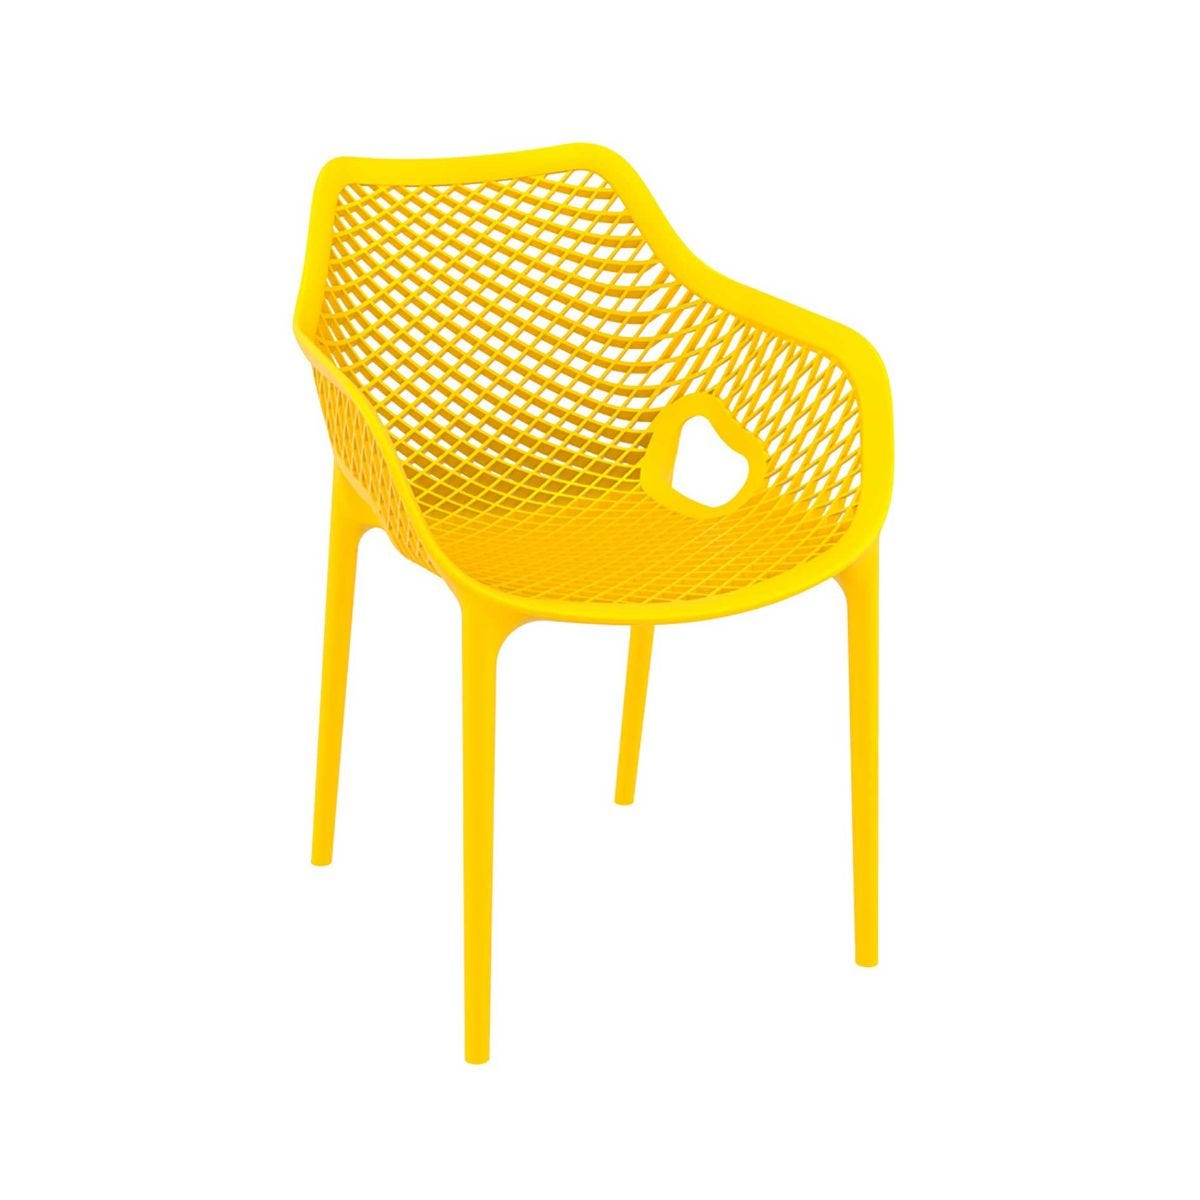 Spring Outdoor Arm Chair, Yellow